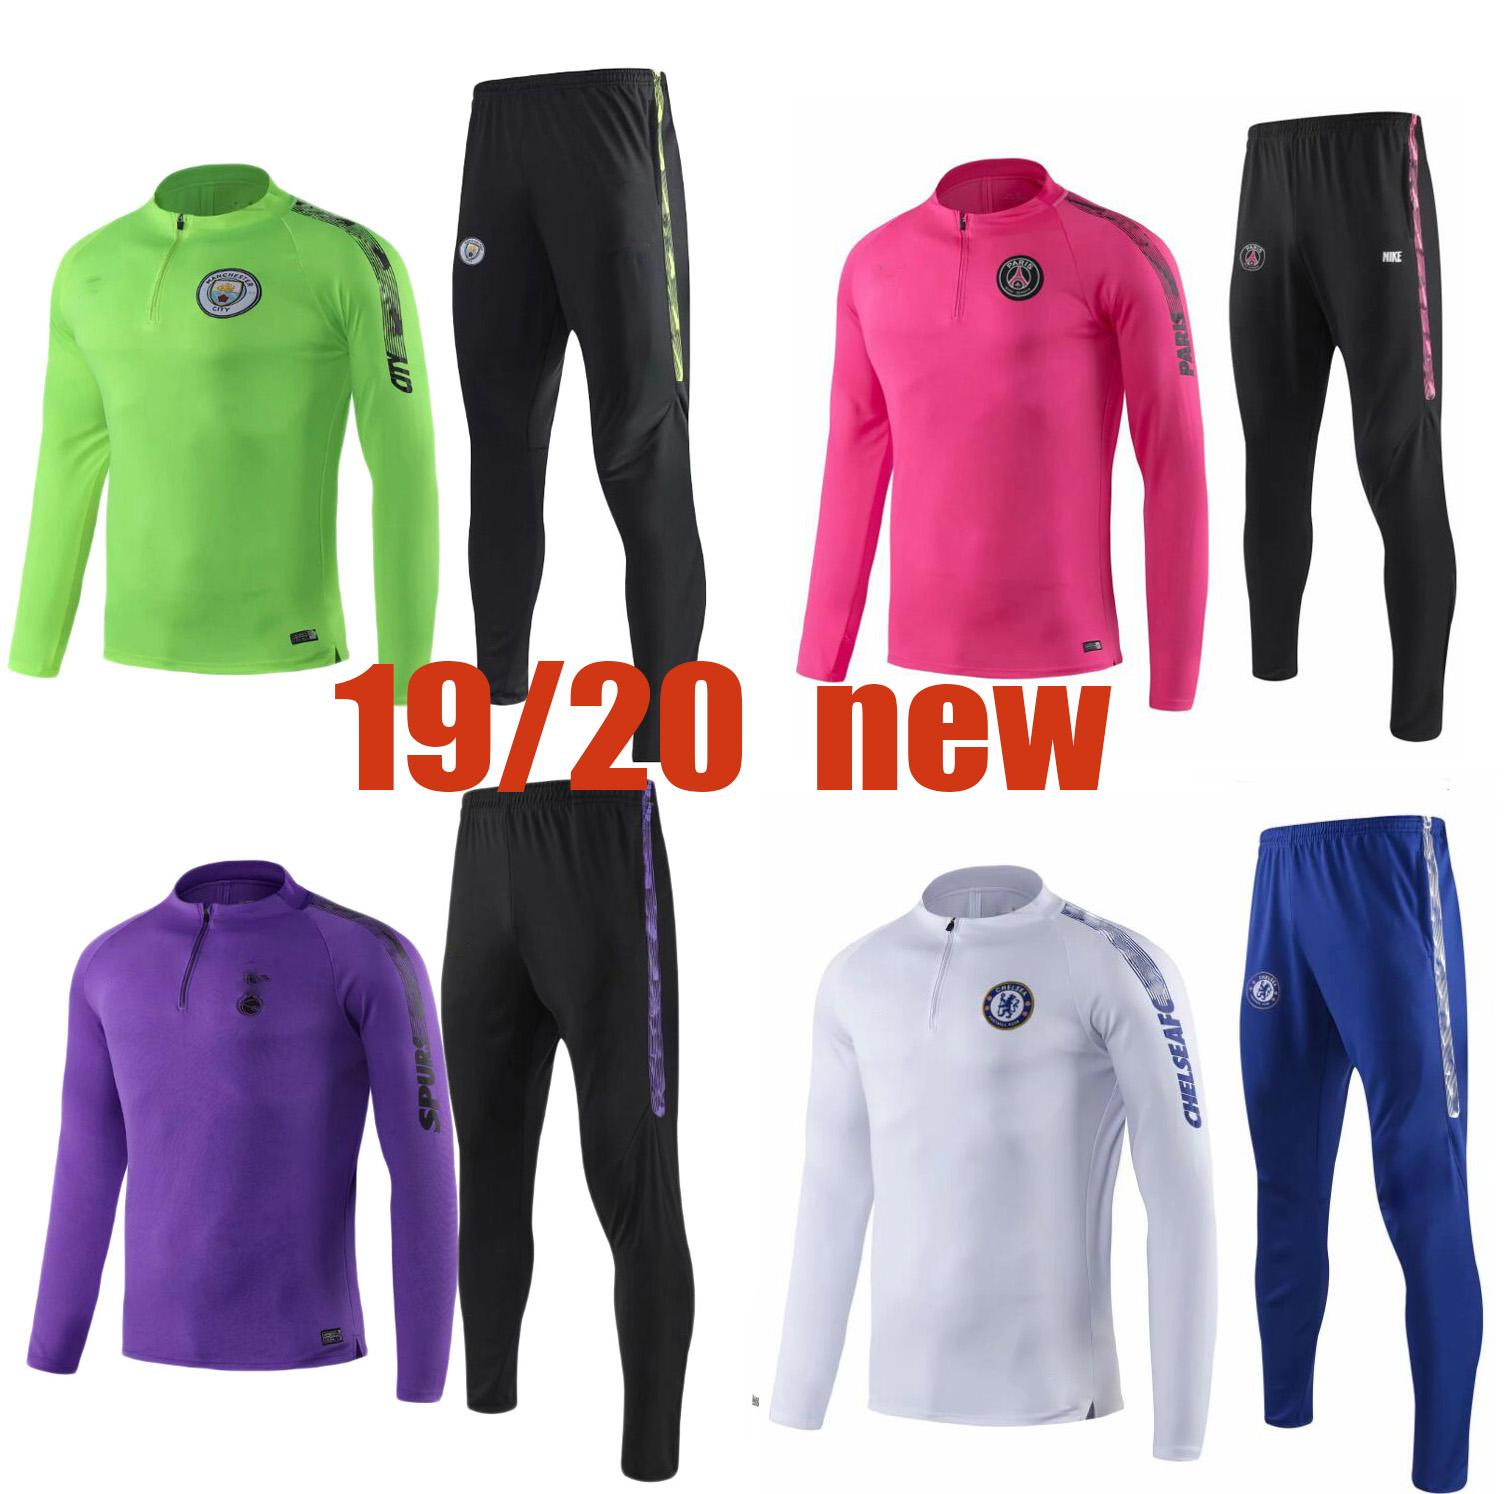 56fd3a313ae3b New 2019-2020 Psg Soccer Tracksuit 18 19 20 Mens Chandal Tracksuit Football  Training Suit Survetement Psg Online with  31.96 Piece on Guzhanbiao s  Store ...